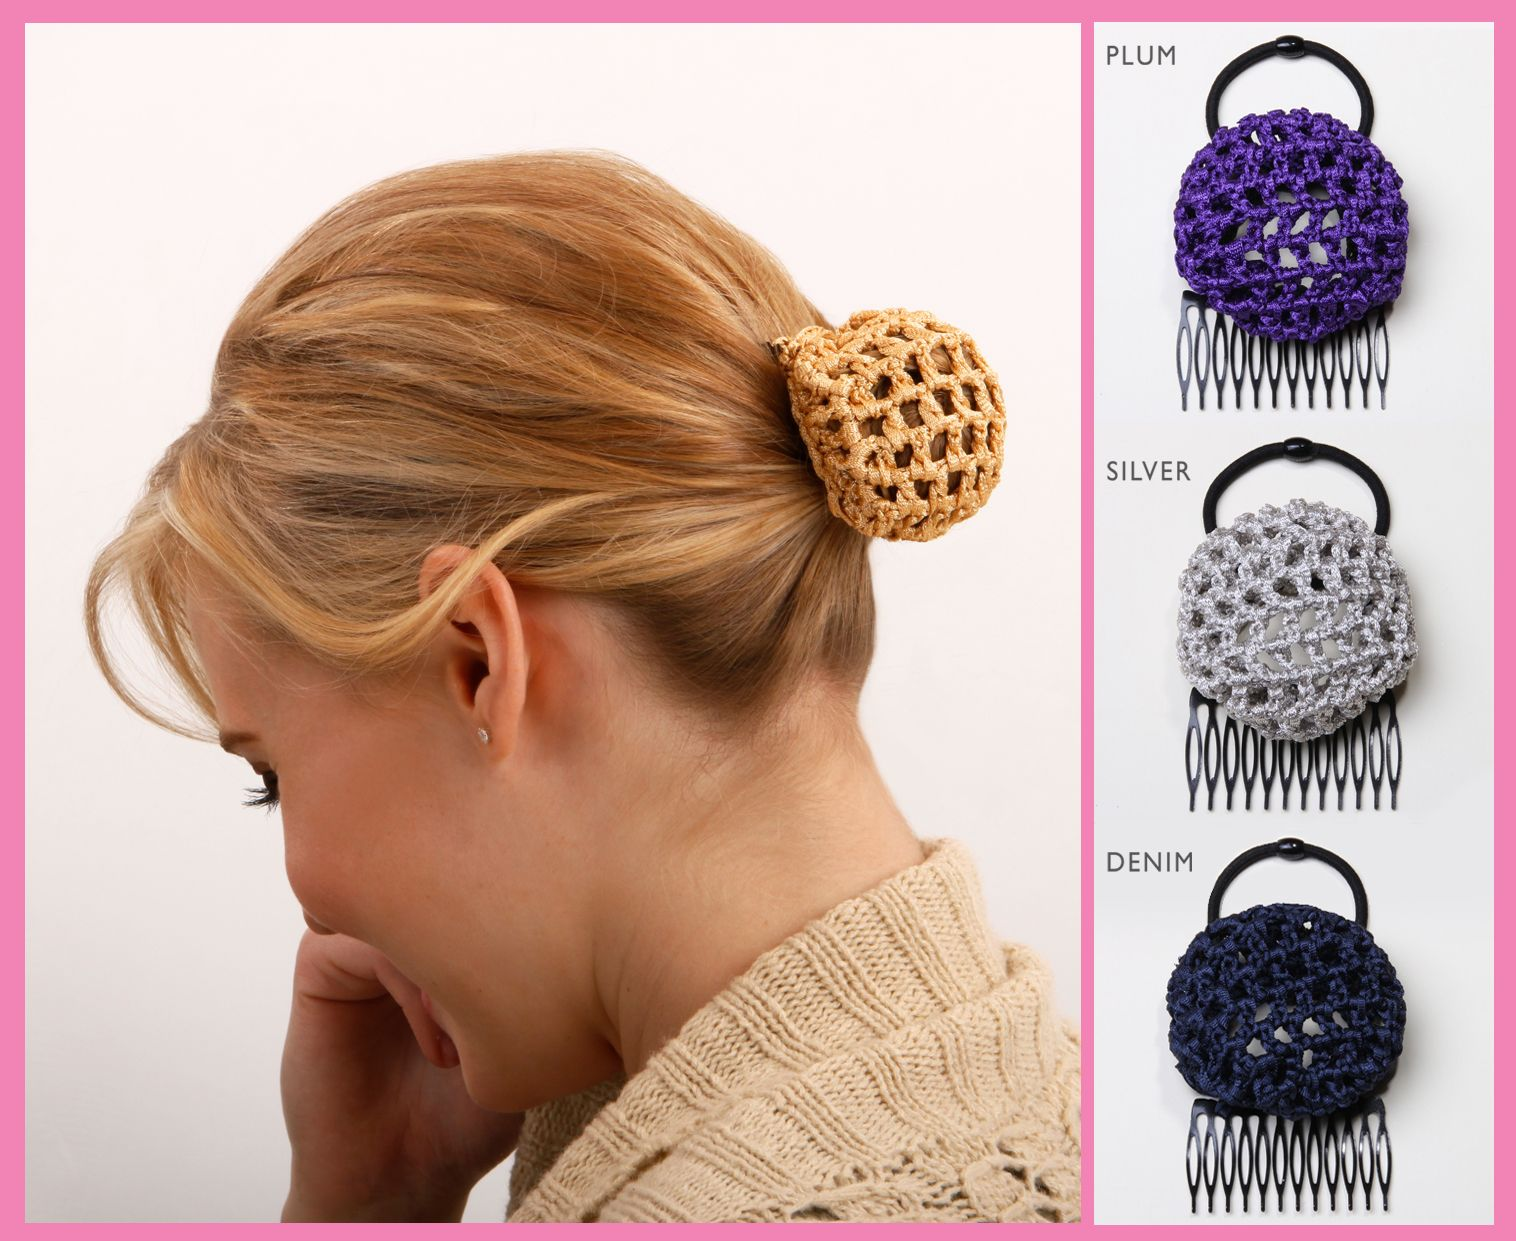 3 New Colors! #Hair #Bun #HairStyle http://www.ponybun.com/blogs/blog/11729453-3-new-ponybun-colors-your-hair-in-a-bun-in-seconds-no-bobby-pins